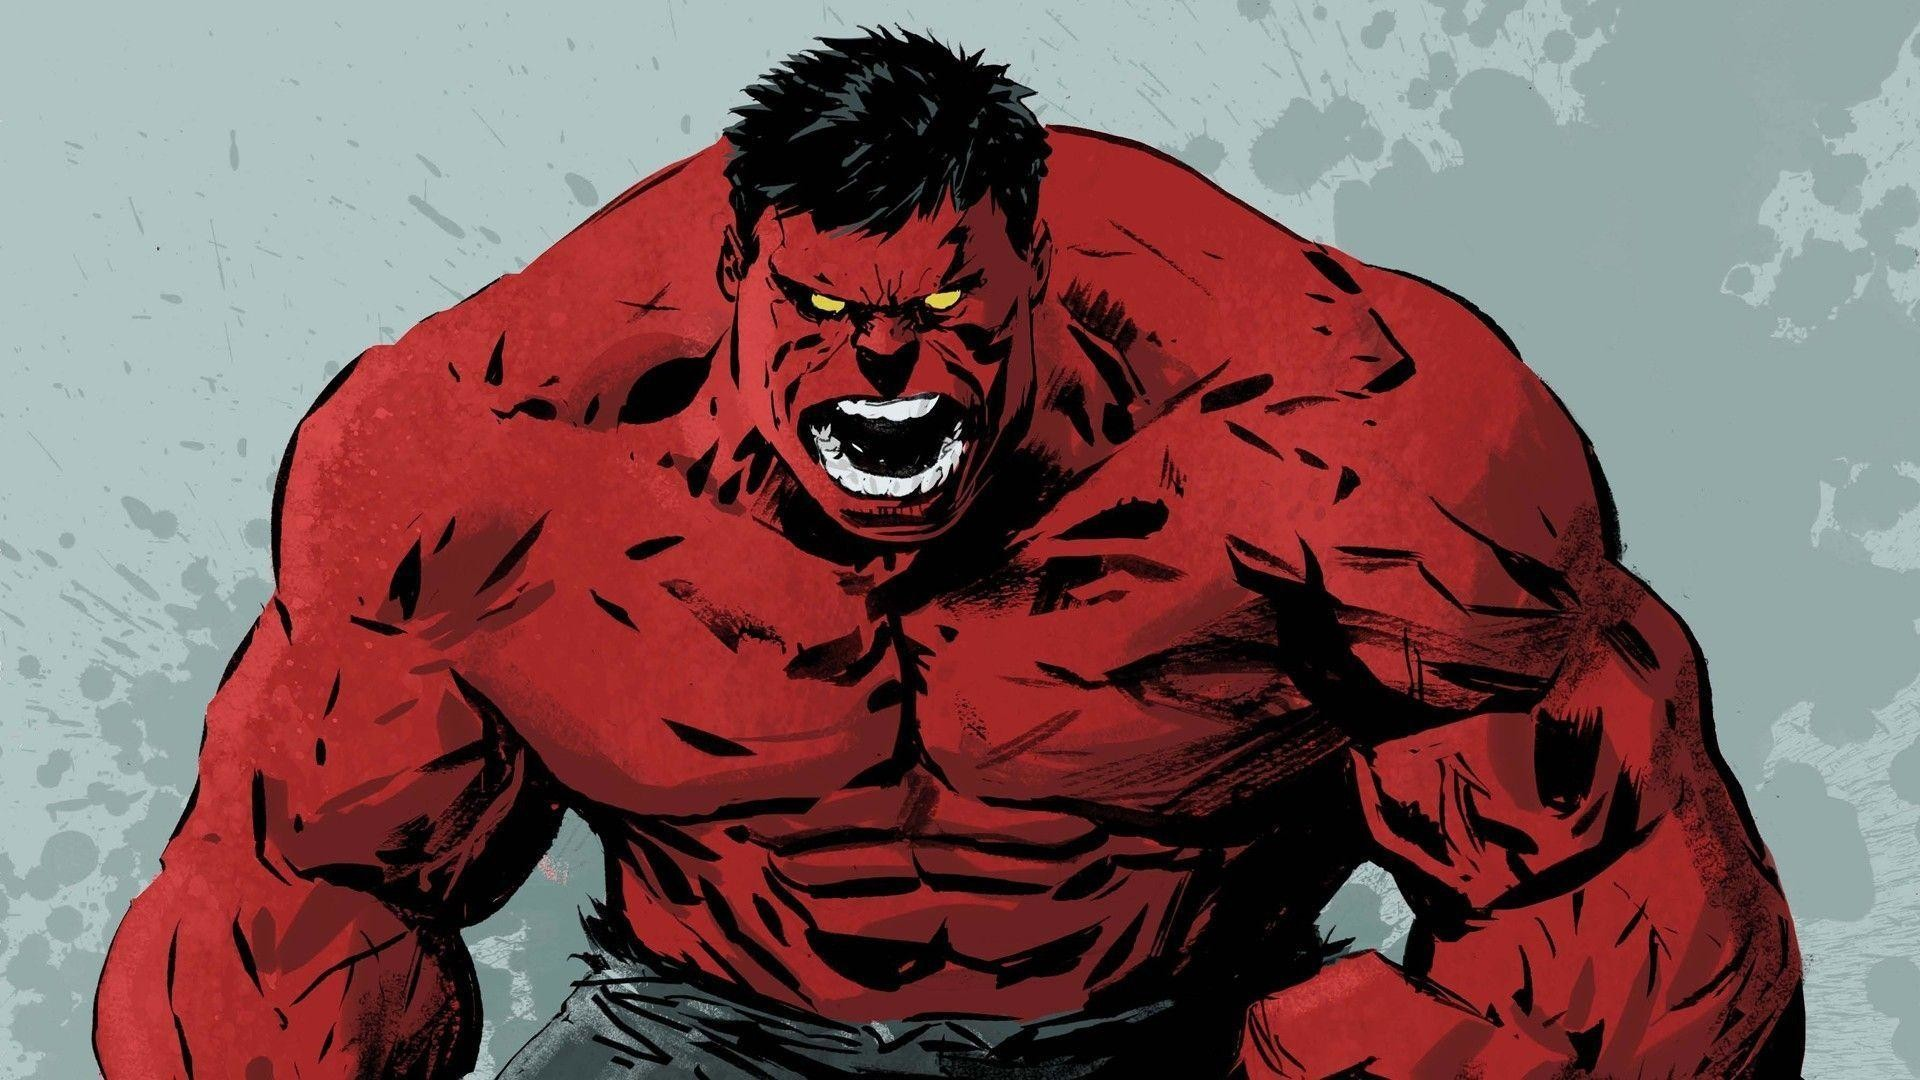 Res: 1920x1080, The Red Hulk Wallpaper - Viewing Gallery